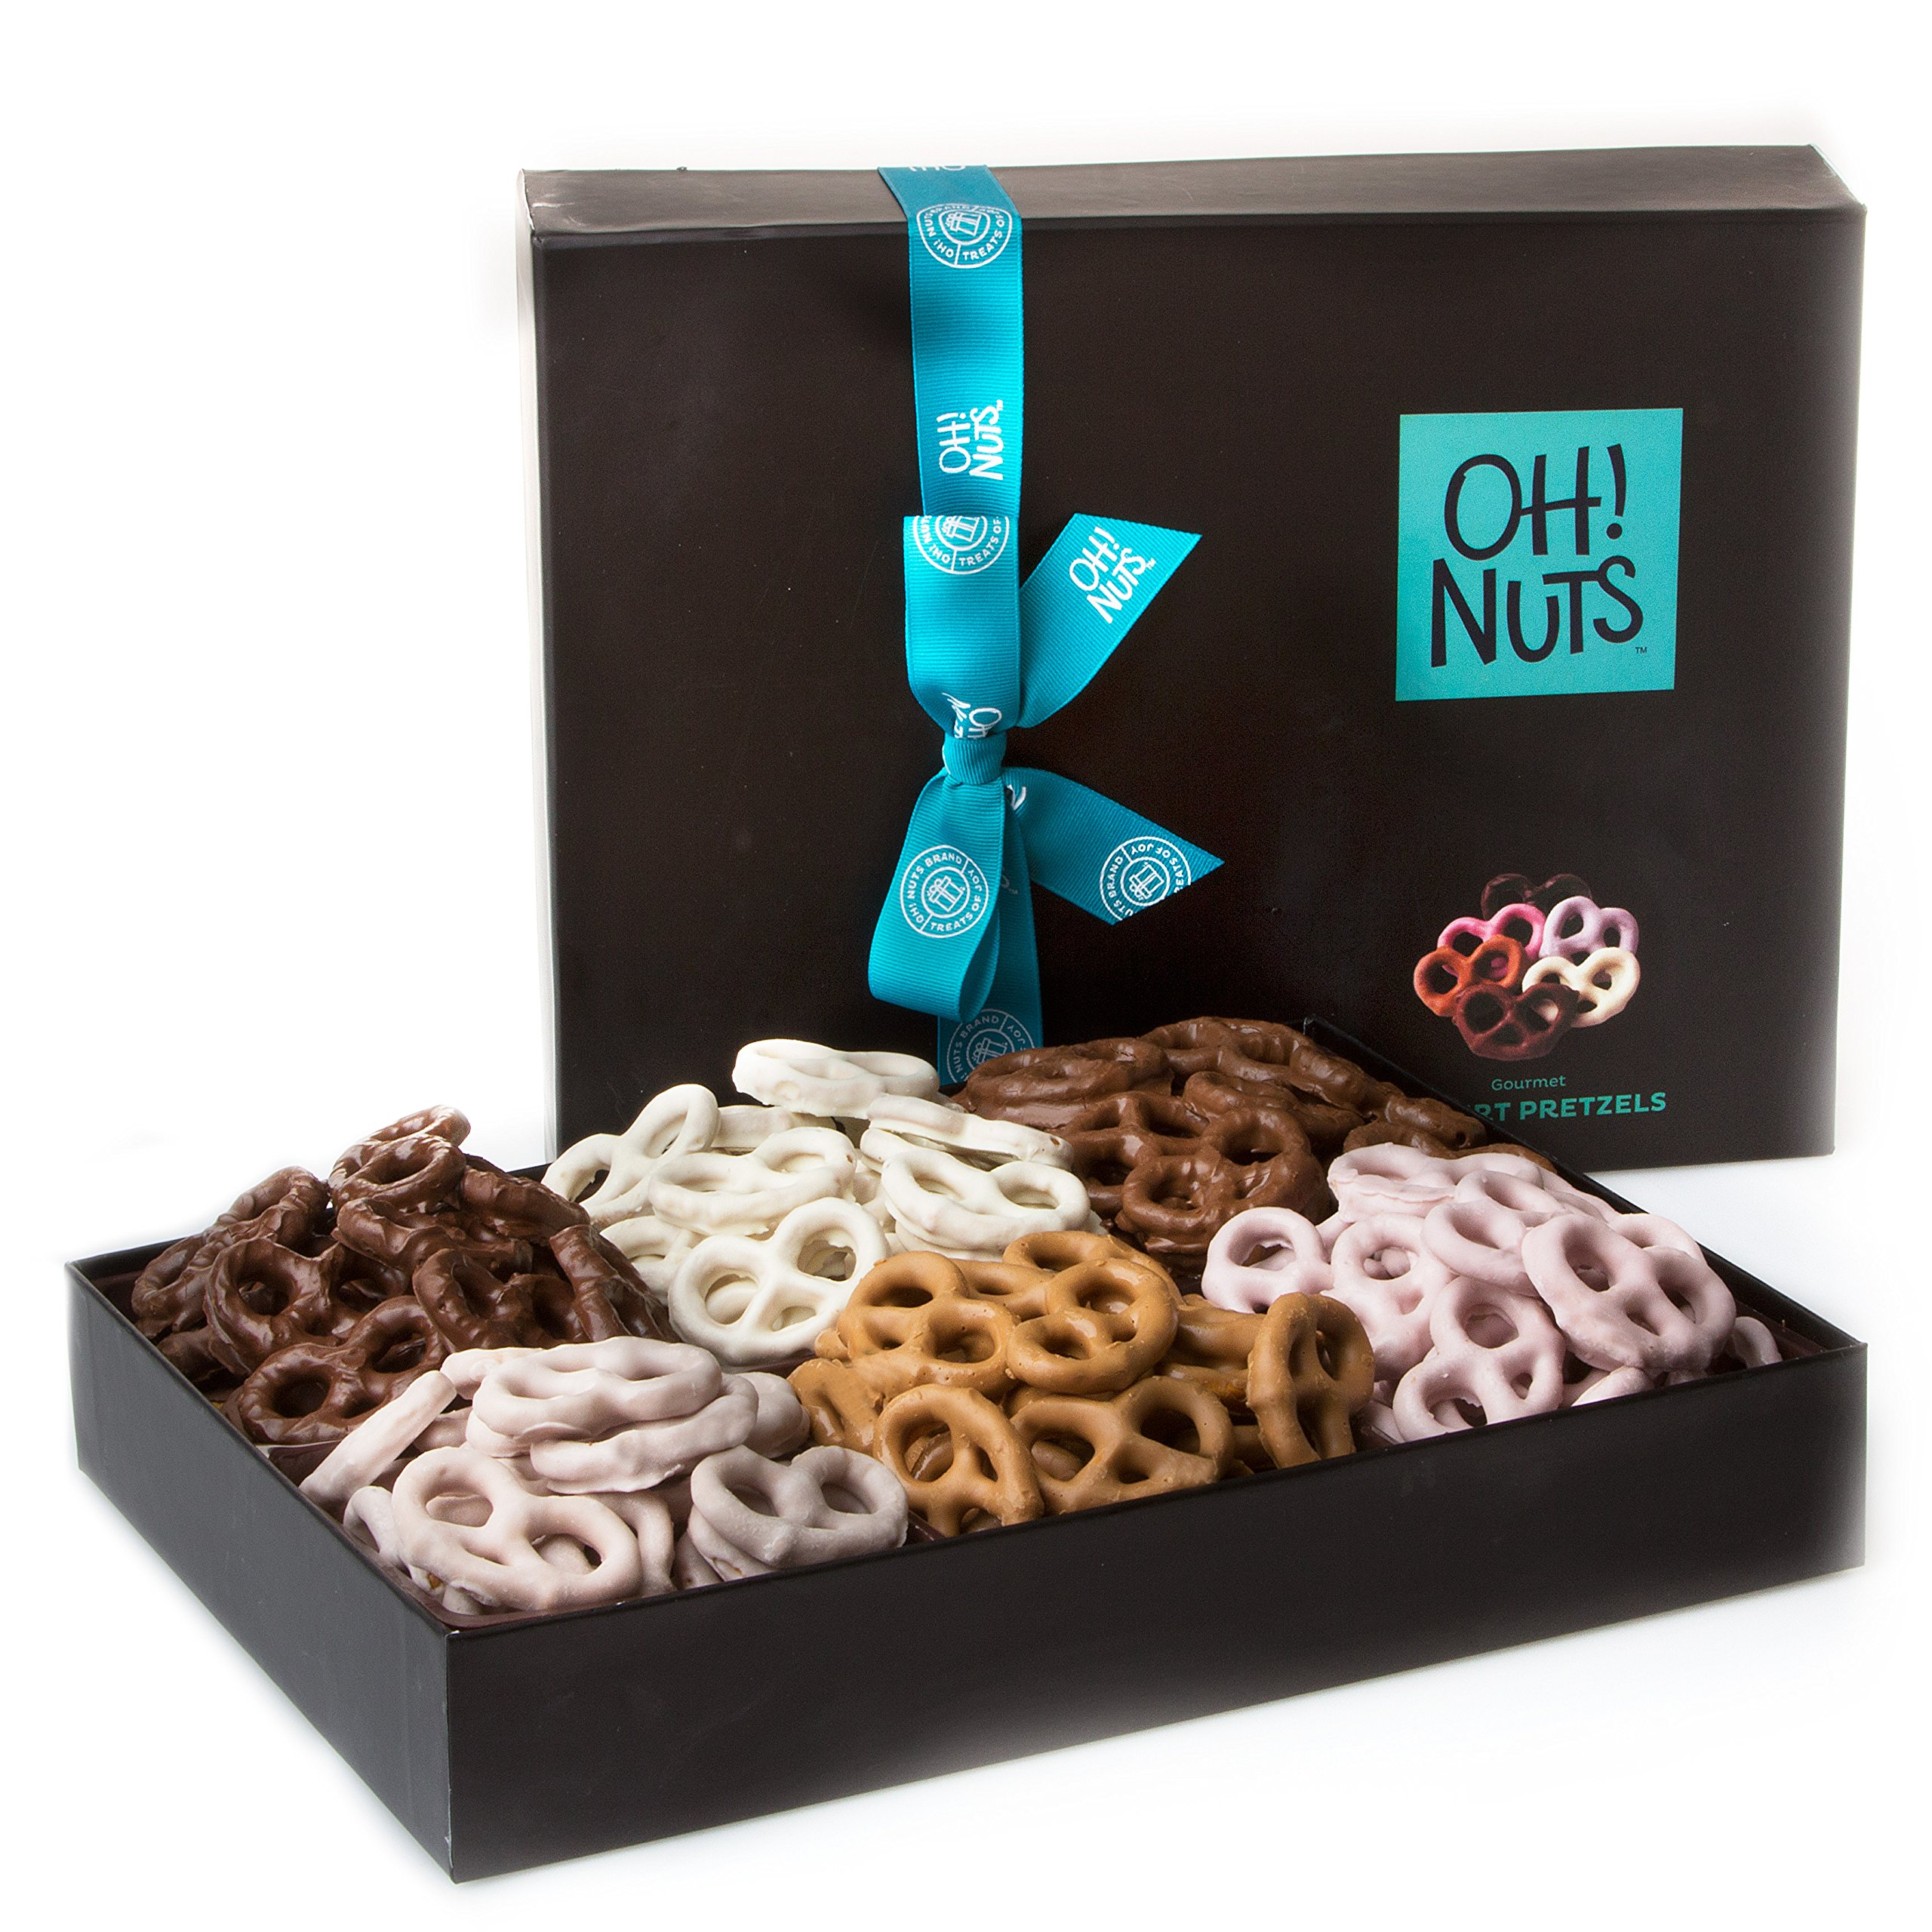 Oh! Nuts Chocolate Covered Pretzels Gift Basket, 6 Variety Assorted Flavored Set of Yogurt, Milk & Dark Gift Box, Send for Christmas Holiday Valentine's or Mother's Day a Sweet Treat for Men & Women by Oh! Nuts® (Image #4)